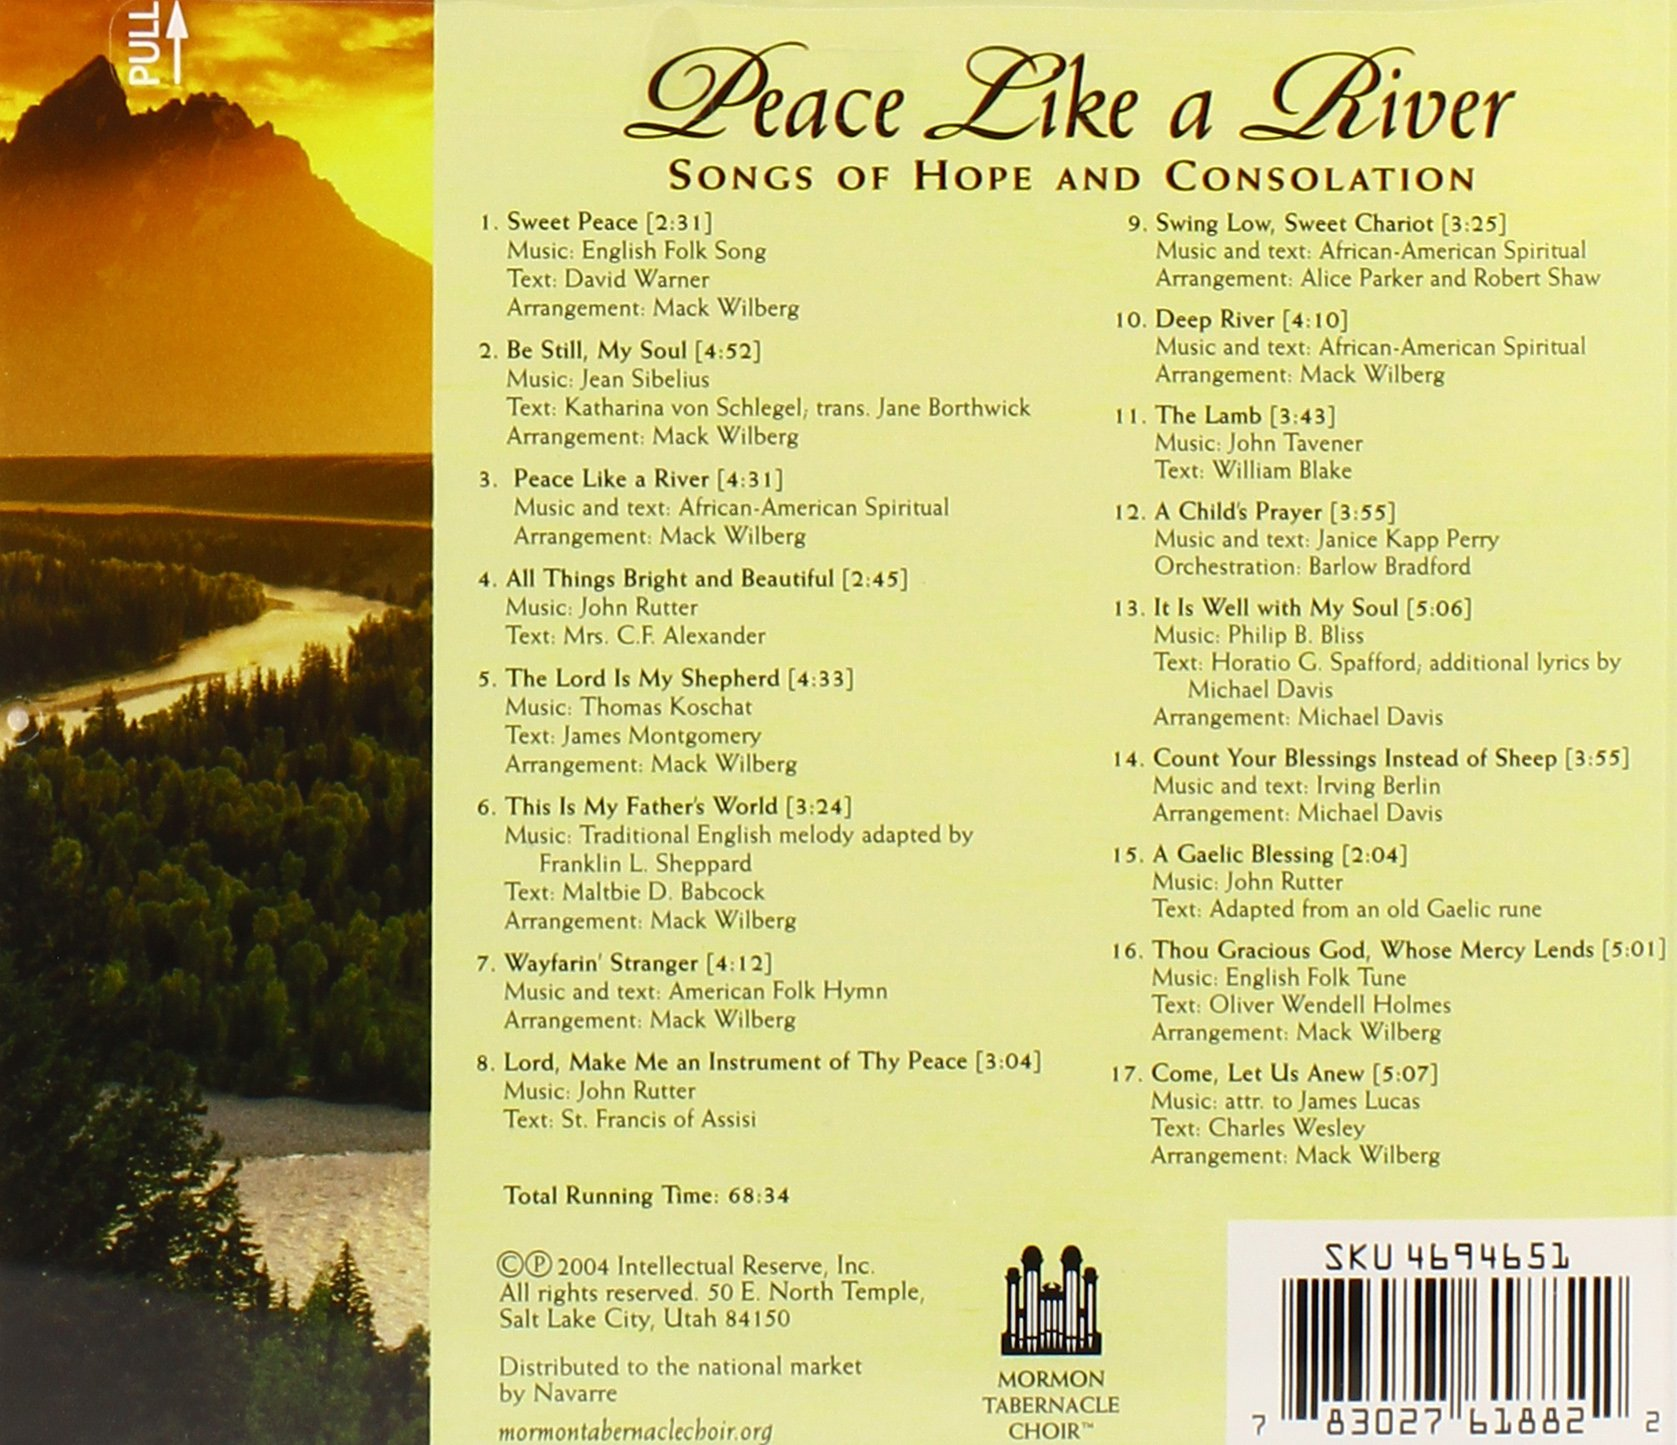 Peace Like a River by Mormon Tabernacle